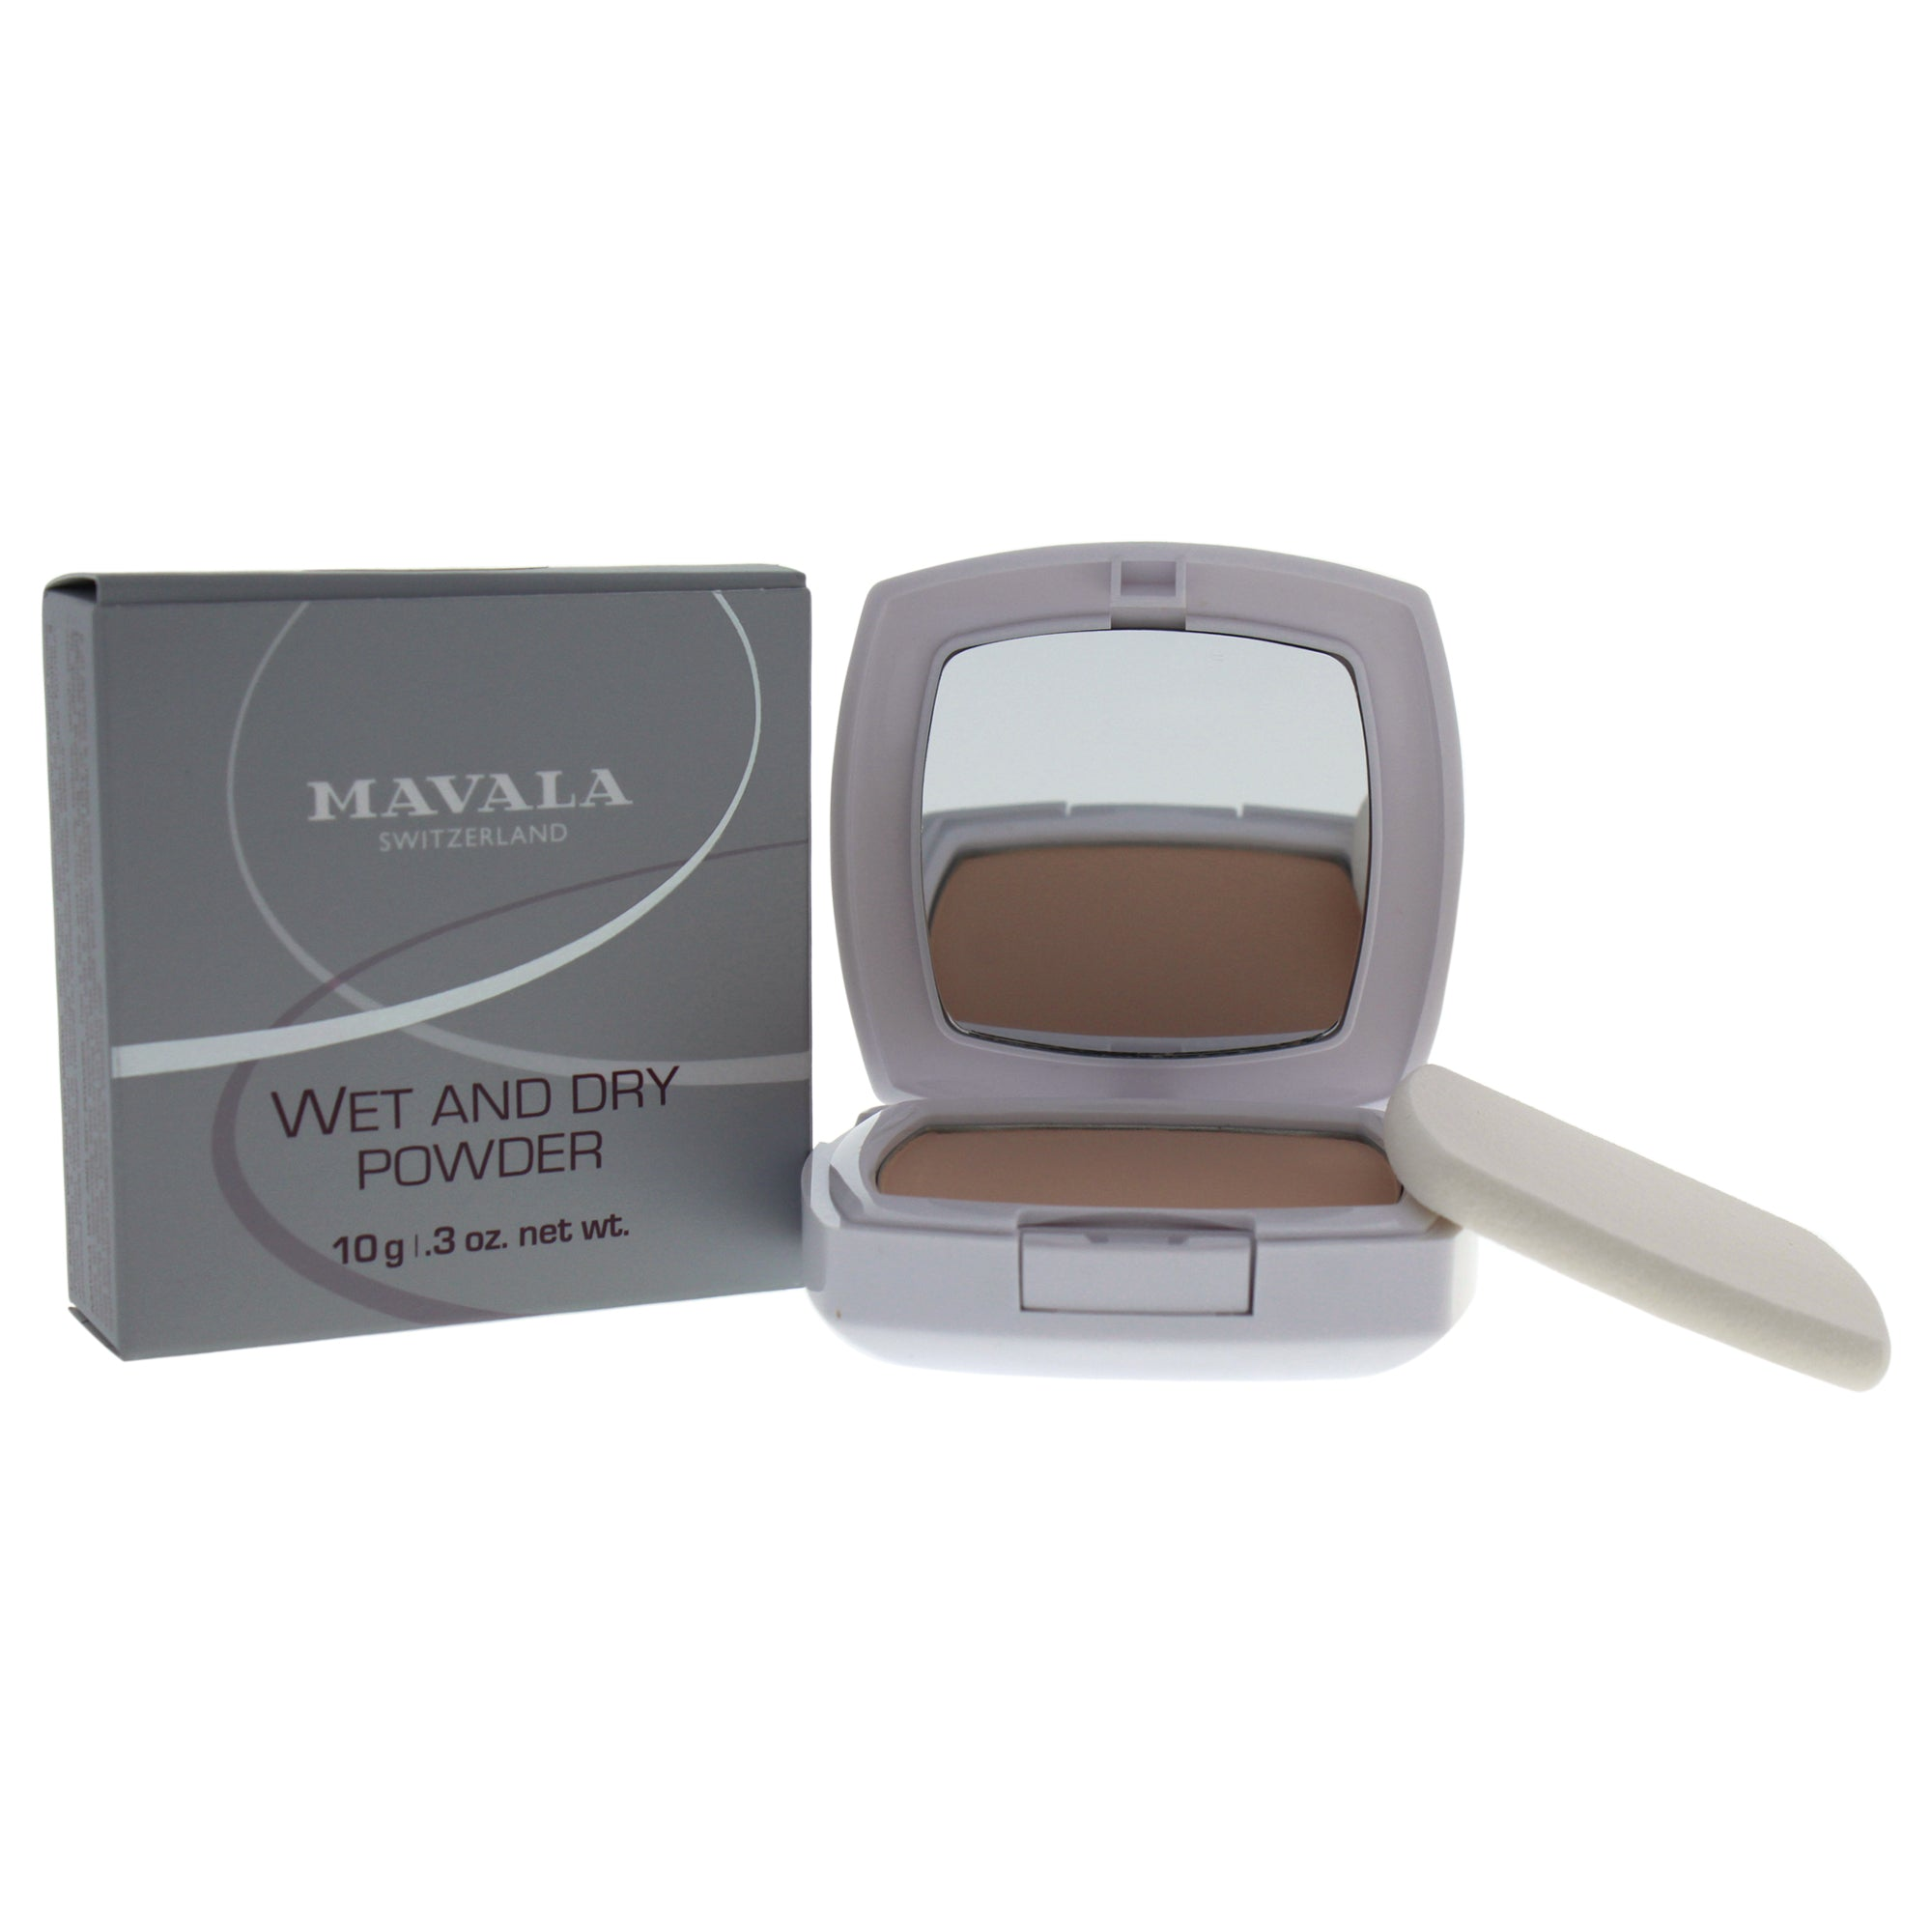 Mavala Wet and Dry Powder